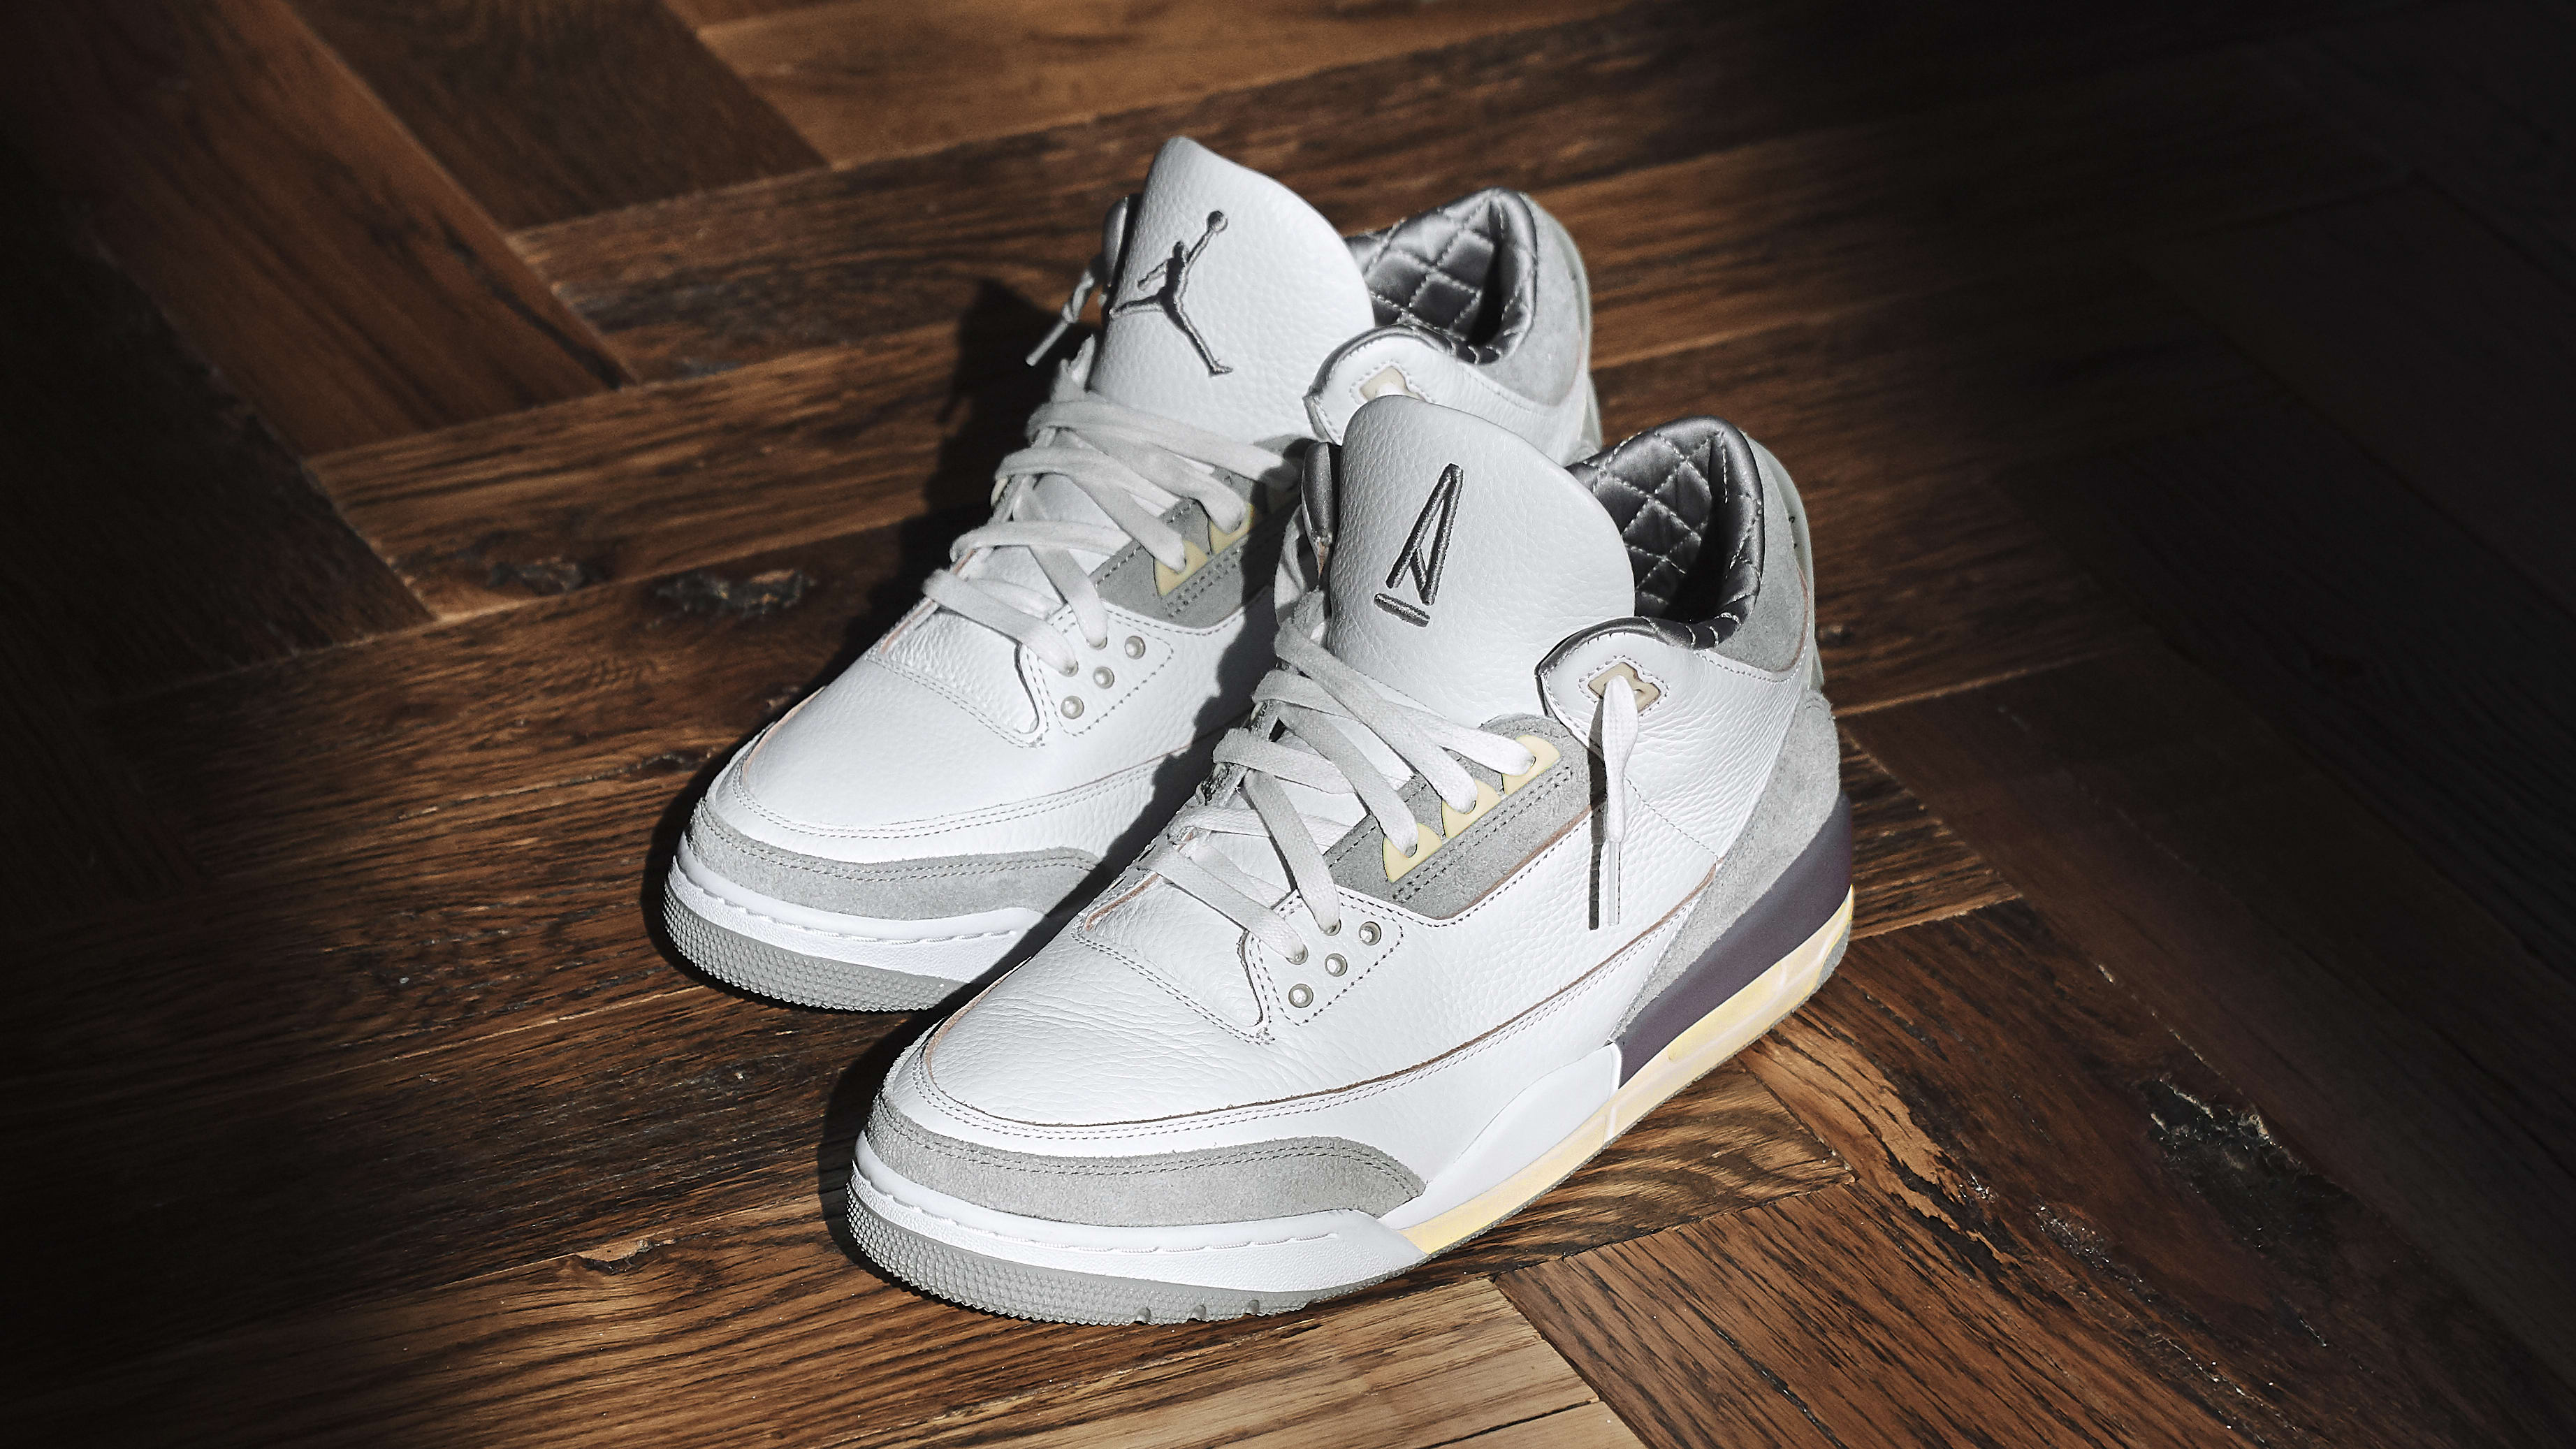 A Ma Maniere x Air Jordan 3 Retro SP Pair Angle